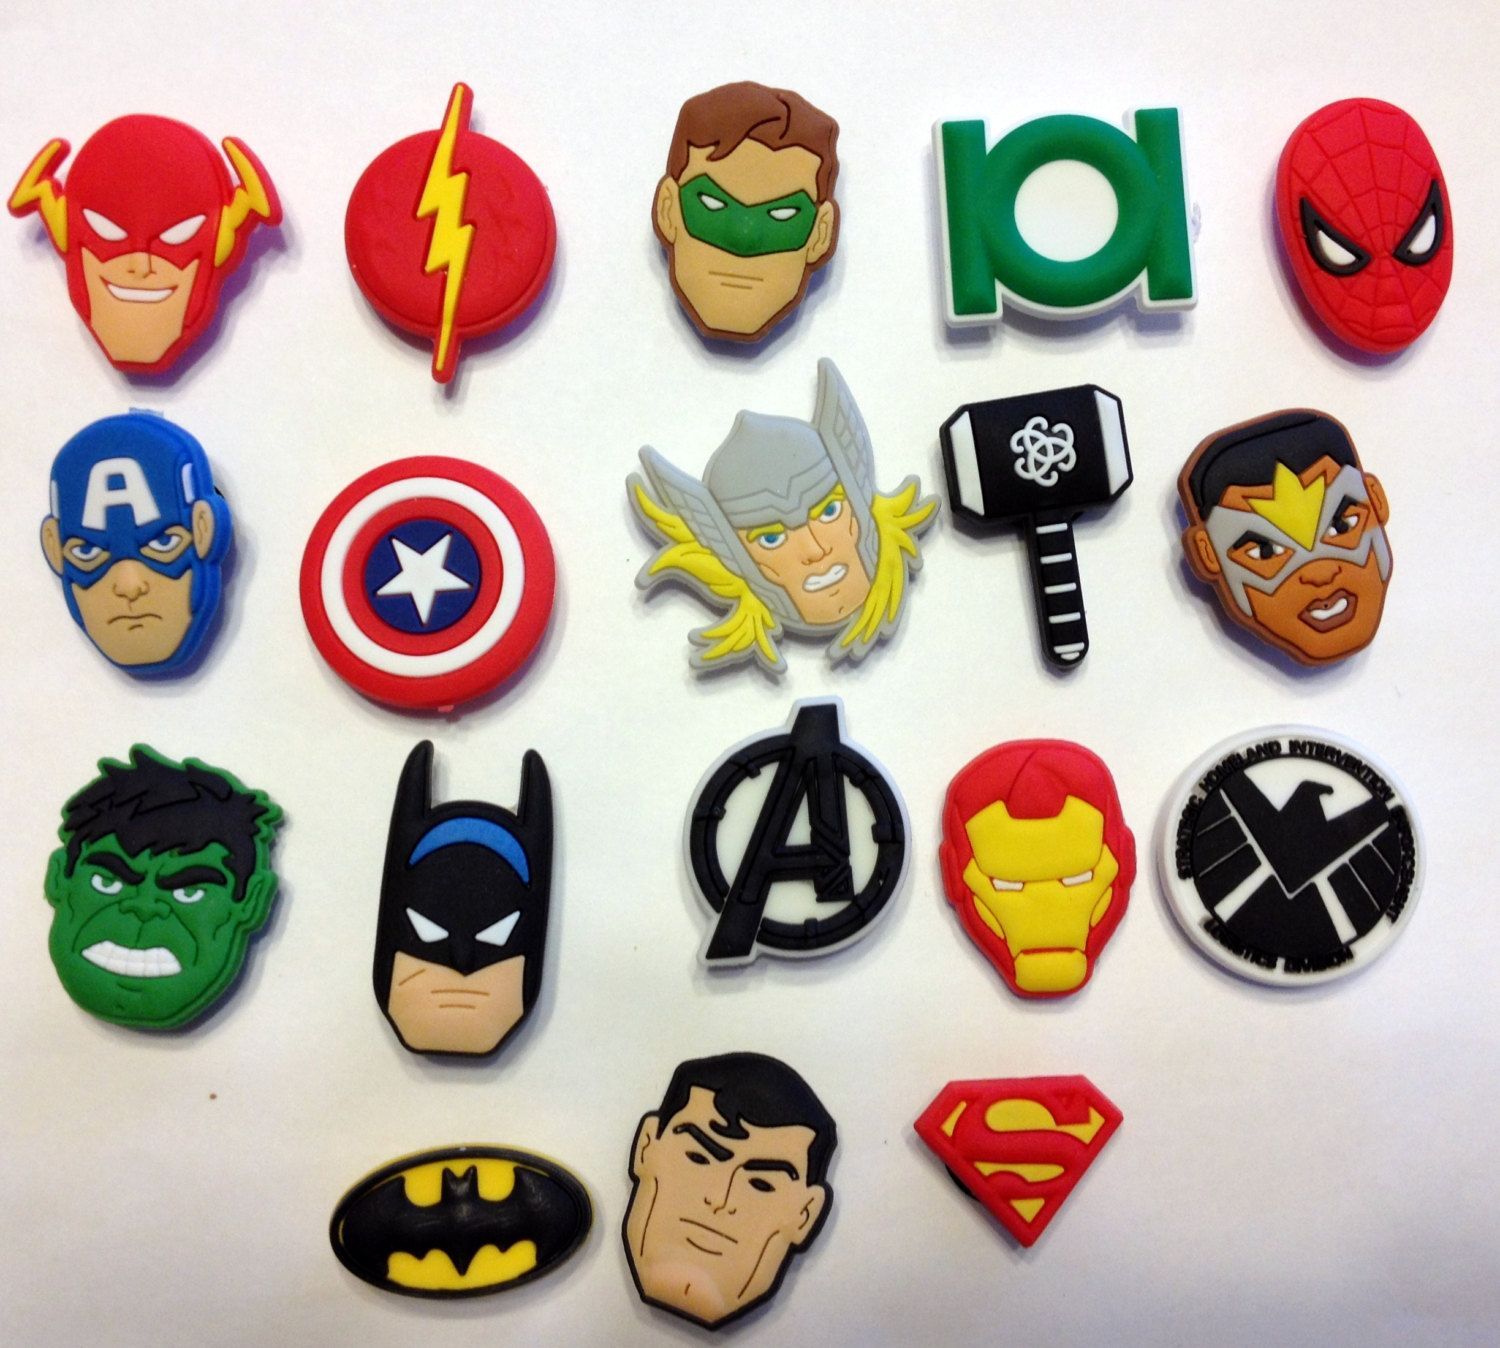 338cf6606 Marvel Comics Hero Pack with Logos 18pc Shoe Charms Cake Toppers  Embellishments by GroovyDeals on Etsy